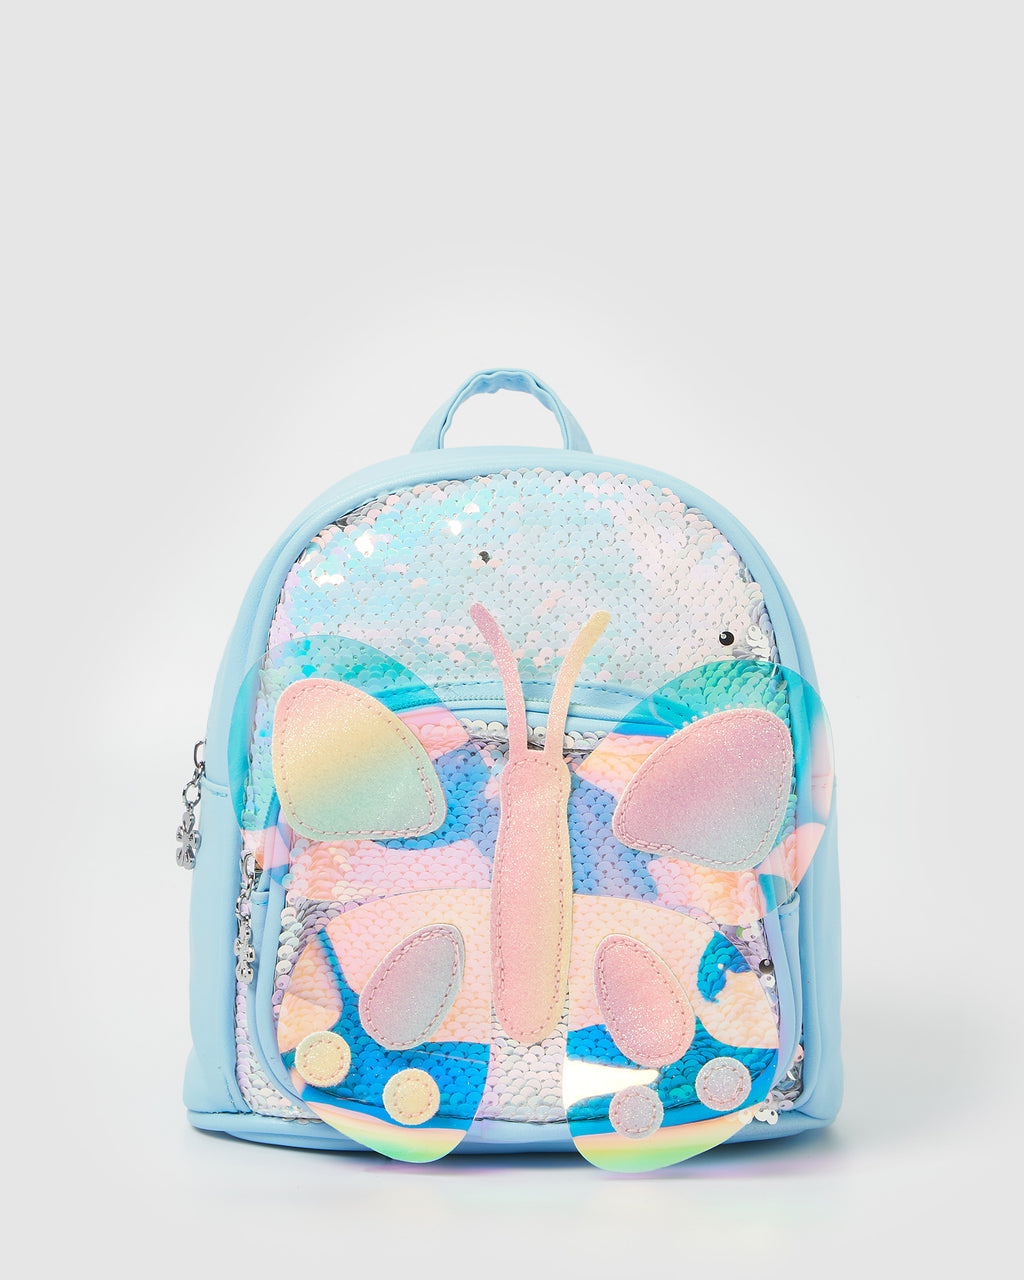 Izoa Kids Cali Butterfly Backpack Blue